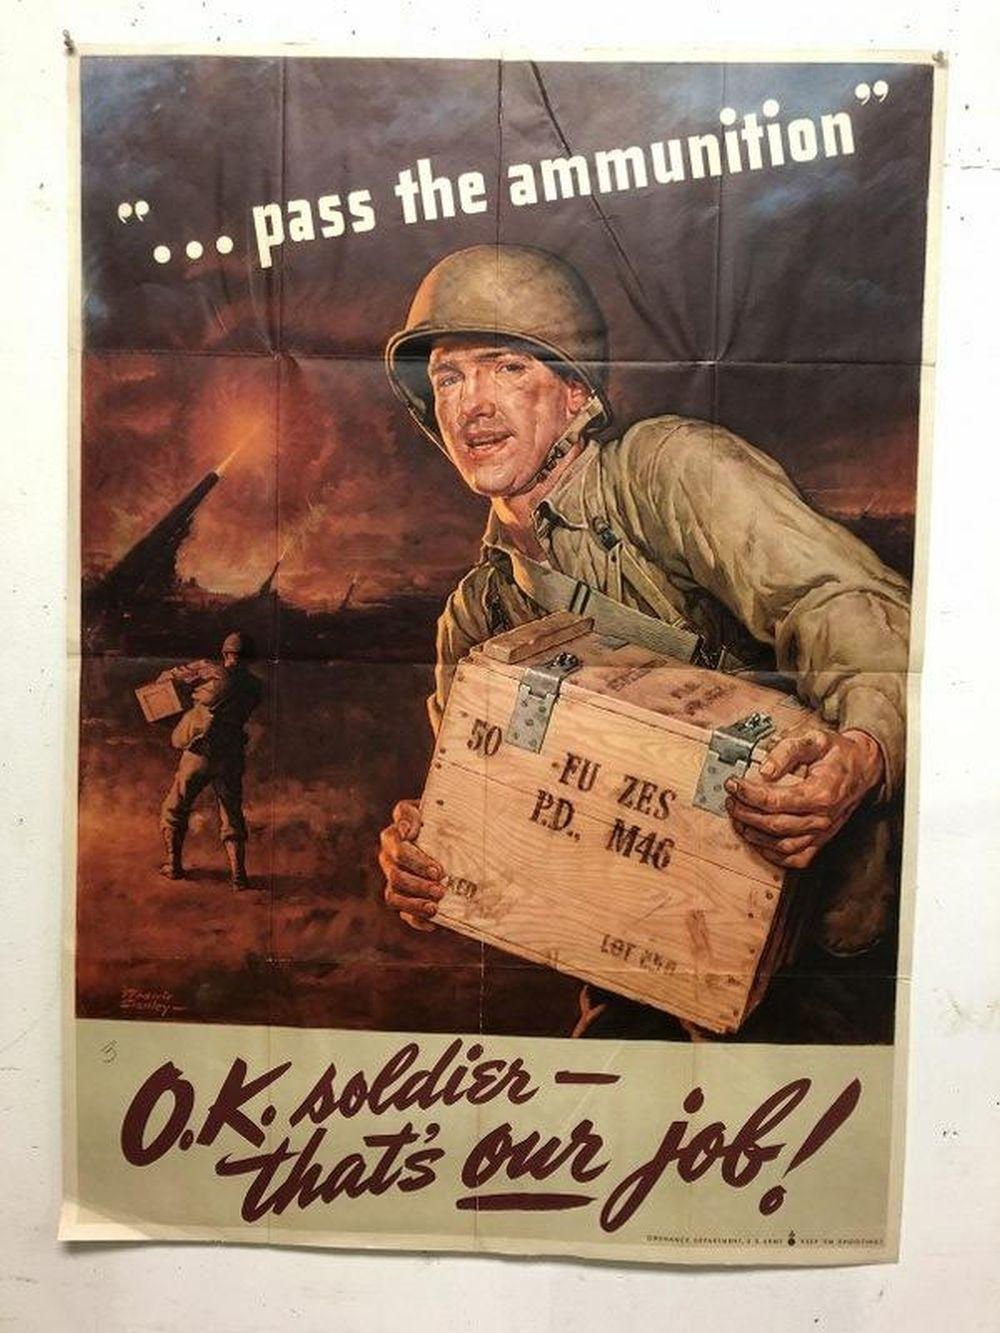 WWII POSTER- PASS THE AMMUNITION, ARTIST IS FREDERIC